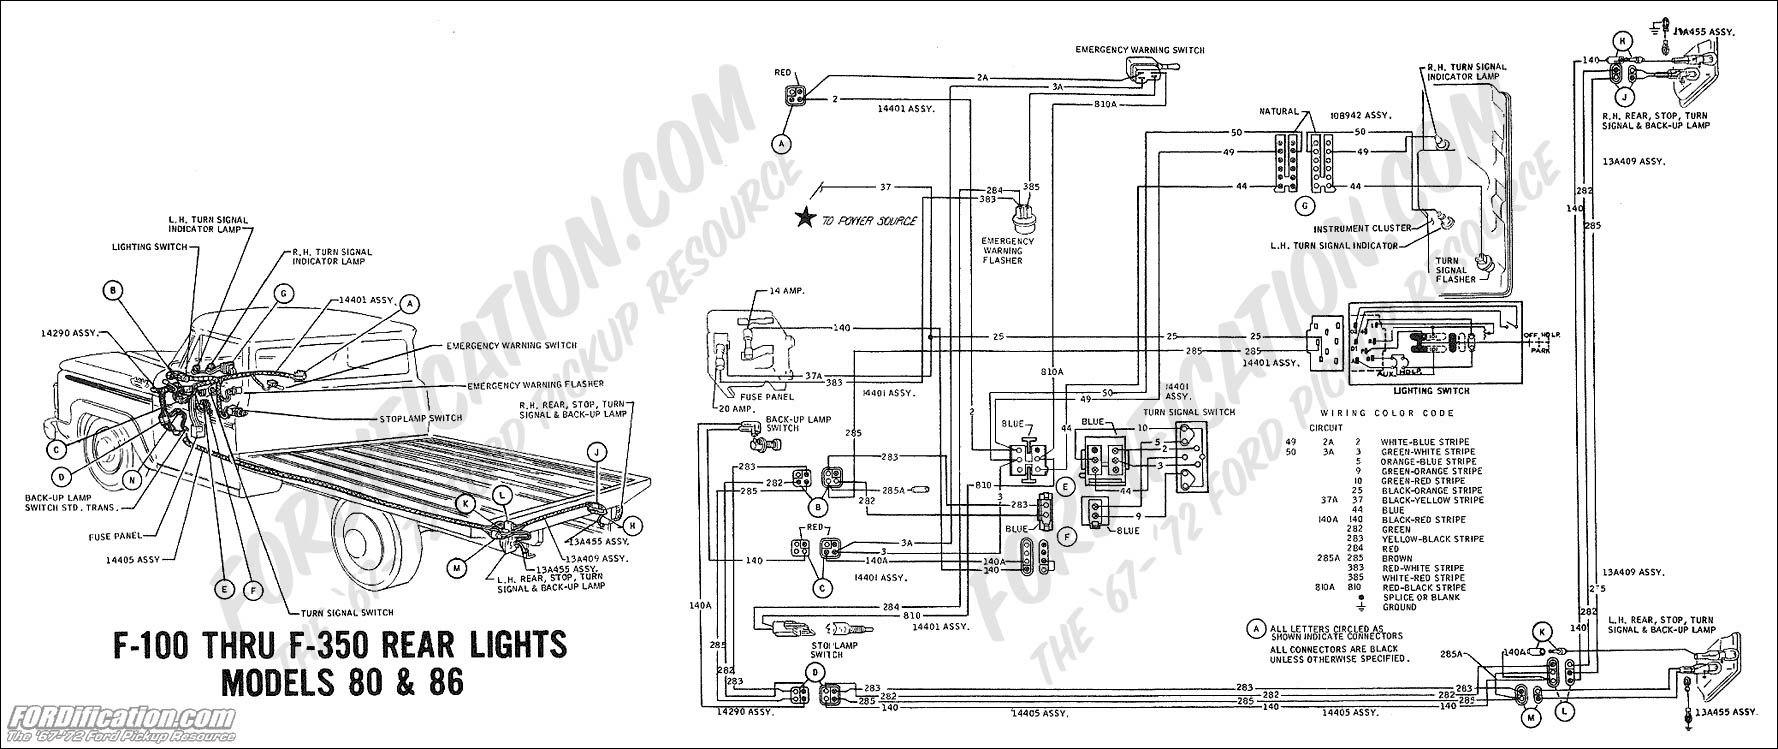 1978 Ford F100 Interior Parts 100 Amp Alt Wiring Diagram Motorcraft